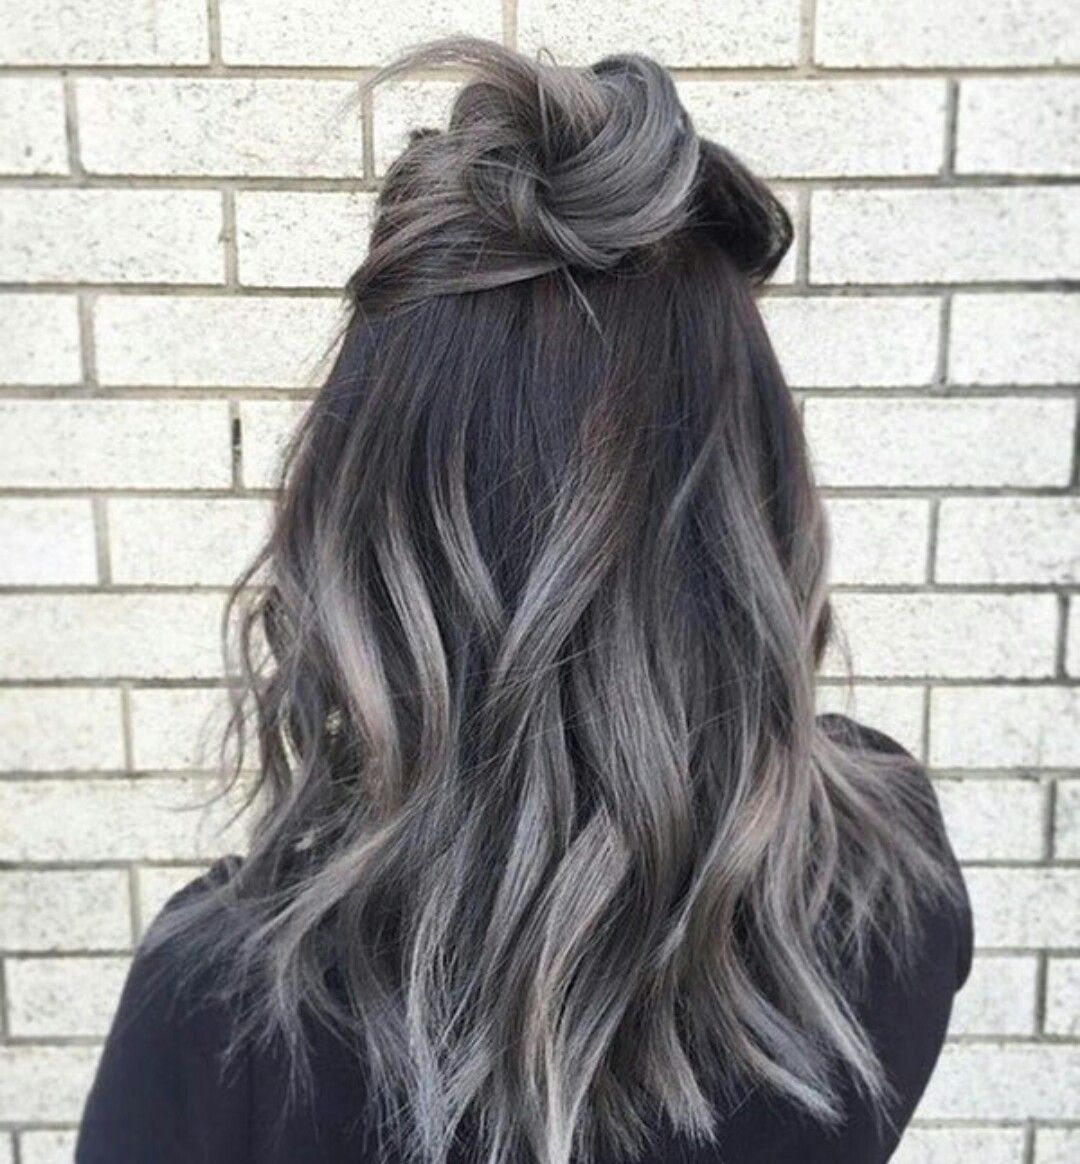 Pin By Nada 003 On Hair Pinterest Hair Coloring Hair Style And